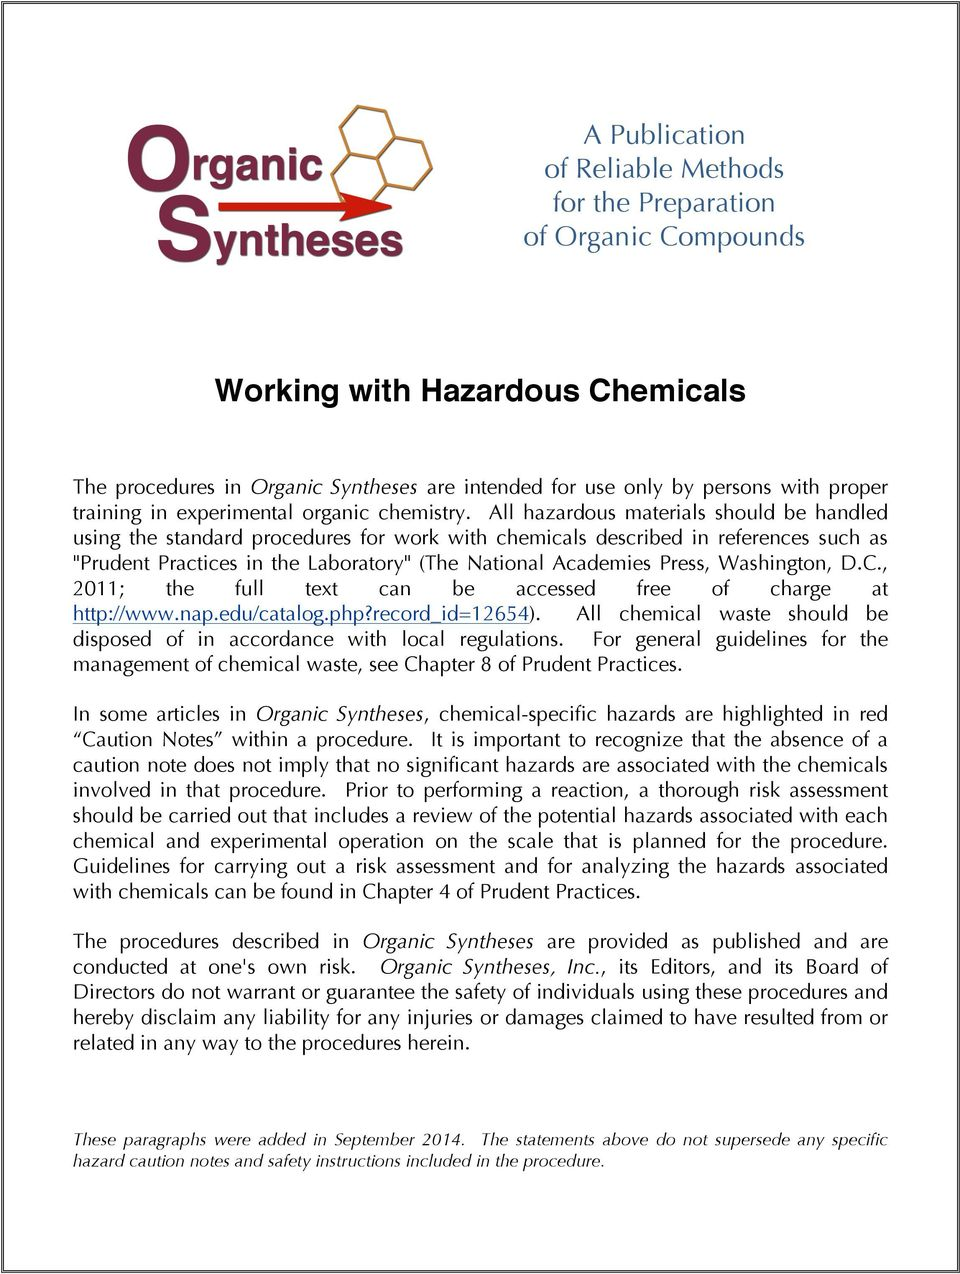 "All hazardous materials should be handled using the standard procedures for work with chemicals described in references such as ""Prudent Practices in the Laboratory"" (The National Academies Press,"